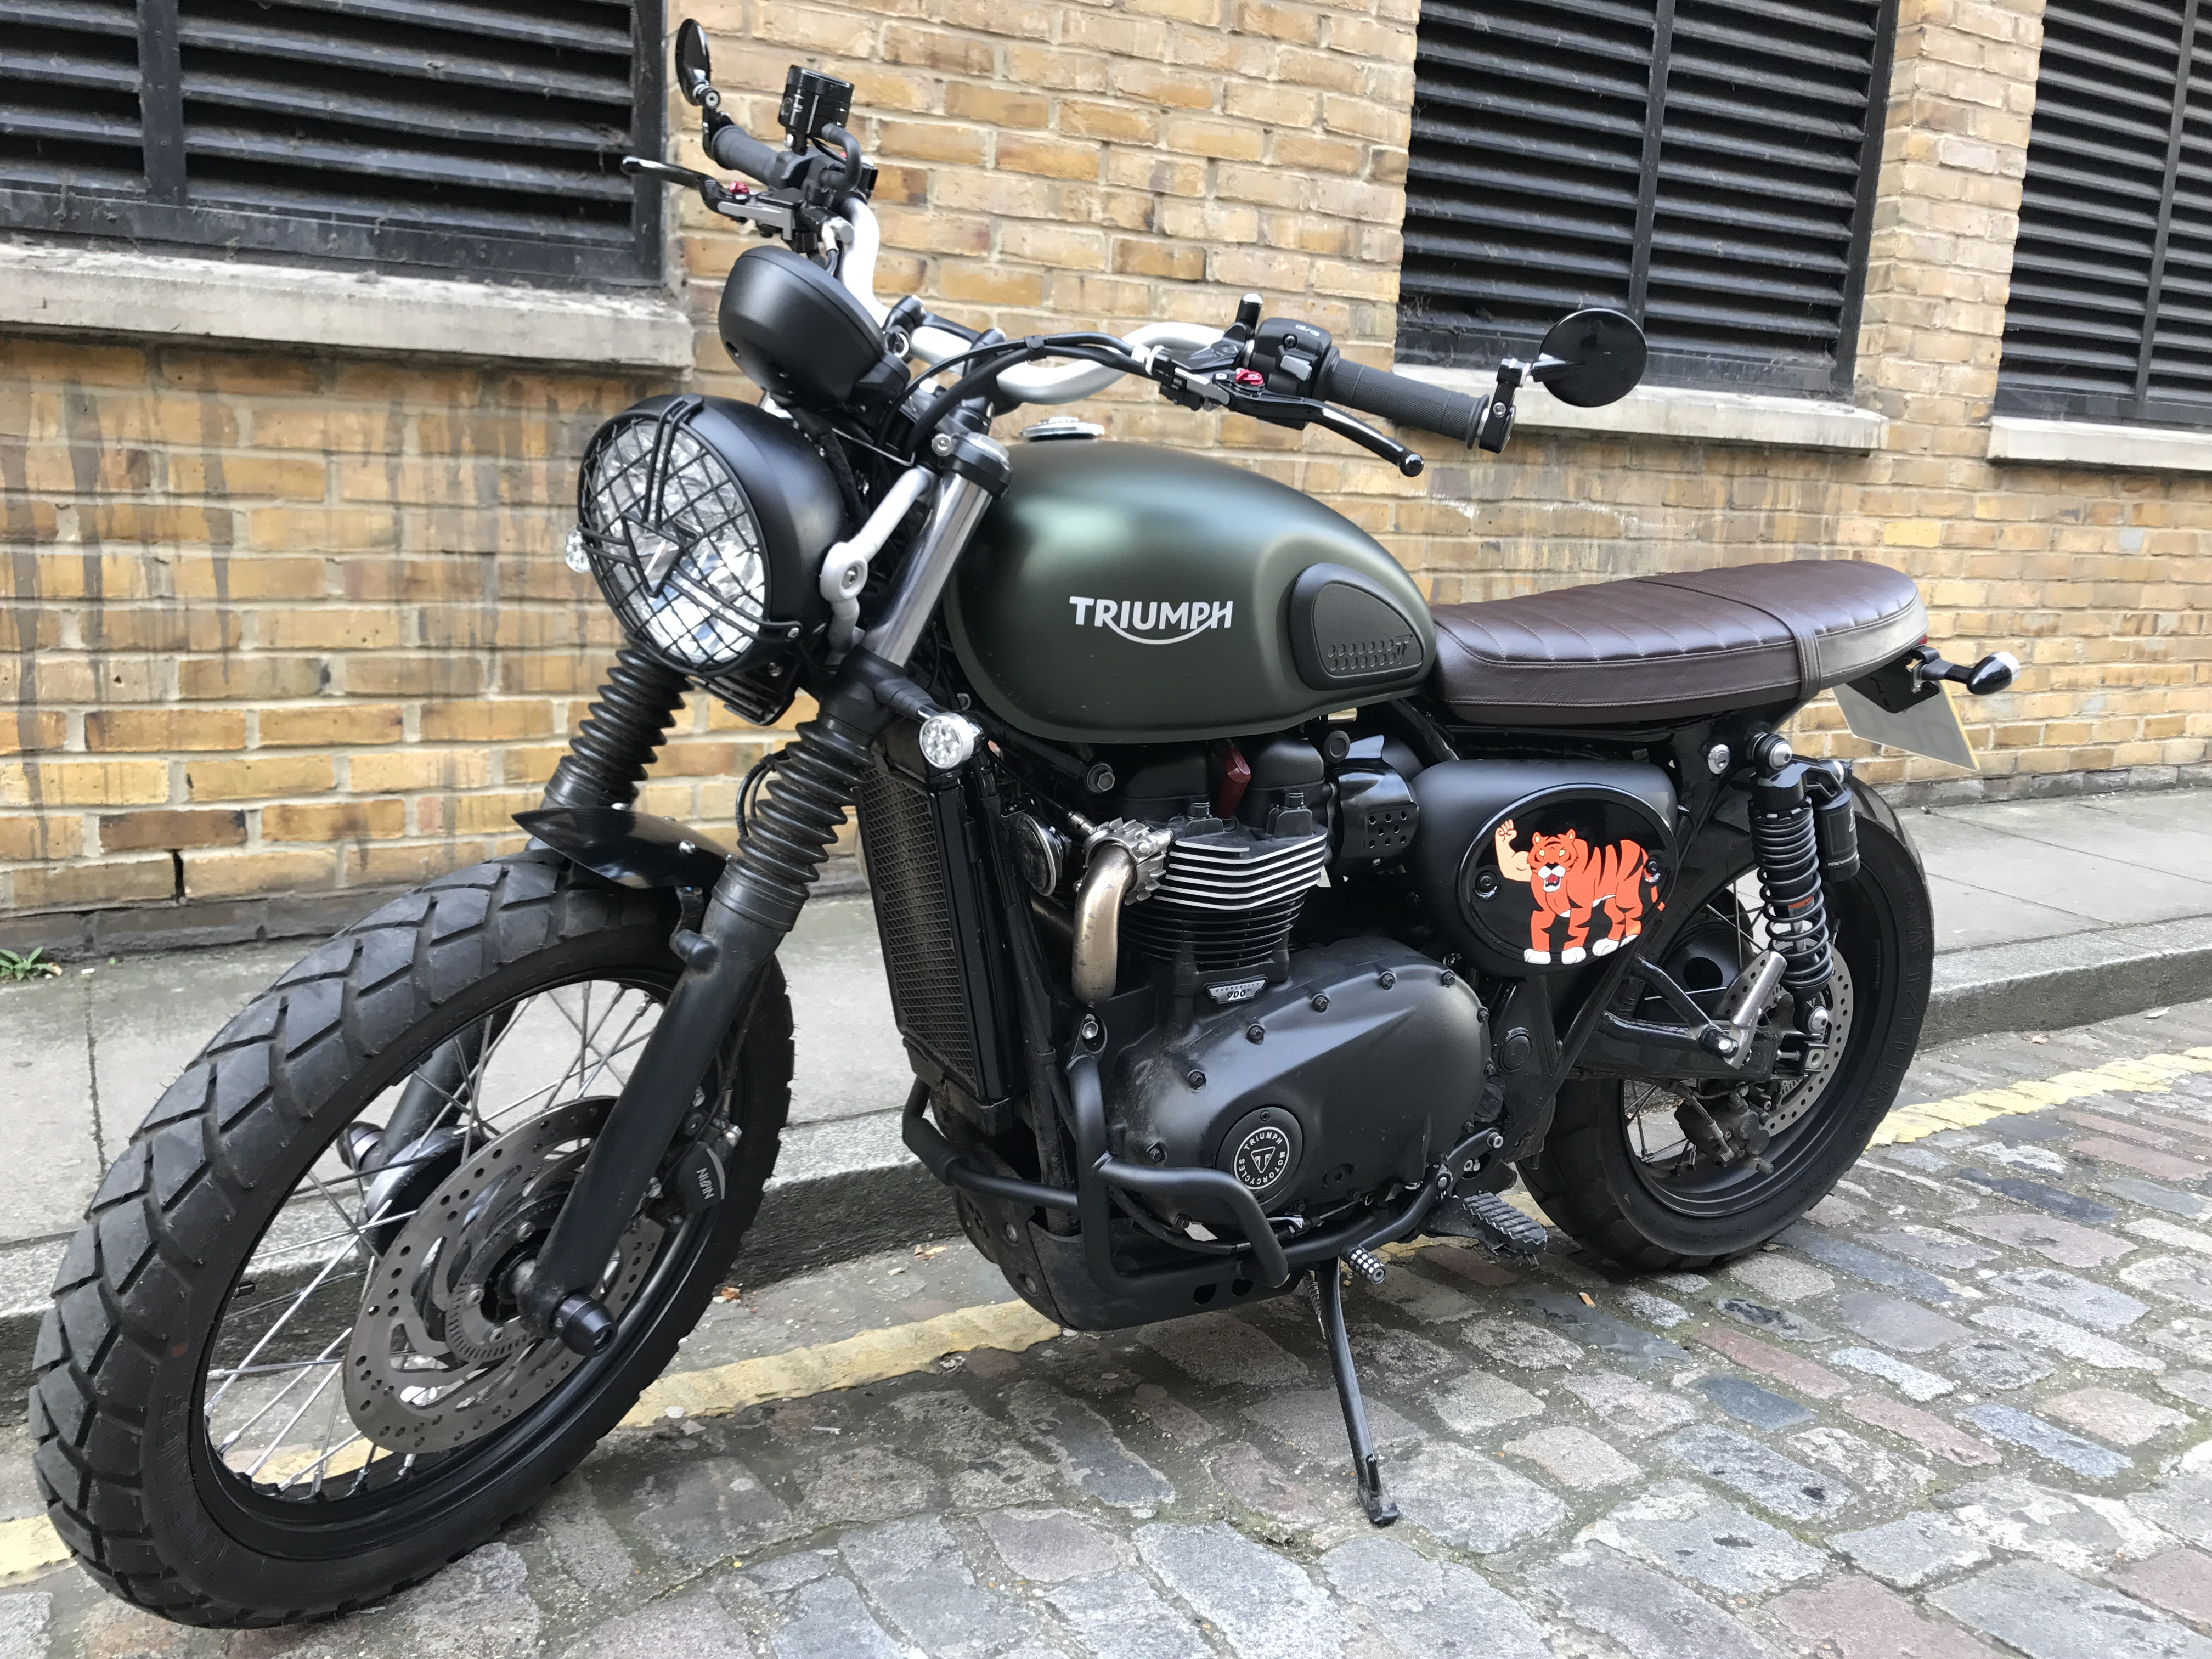 street scrambler accessories page 33 triumph forum triumph rat motorcycle forums. Black Bedroom Furniture Sets. Home Design Ideas